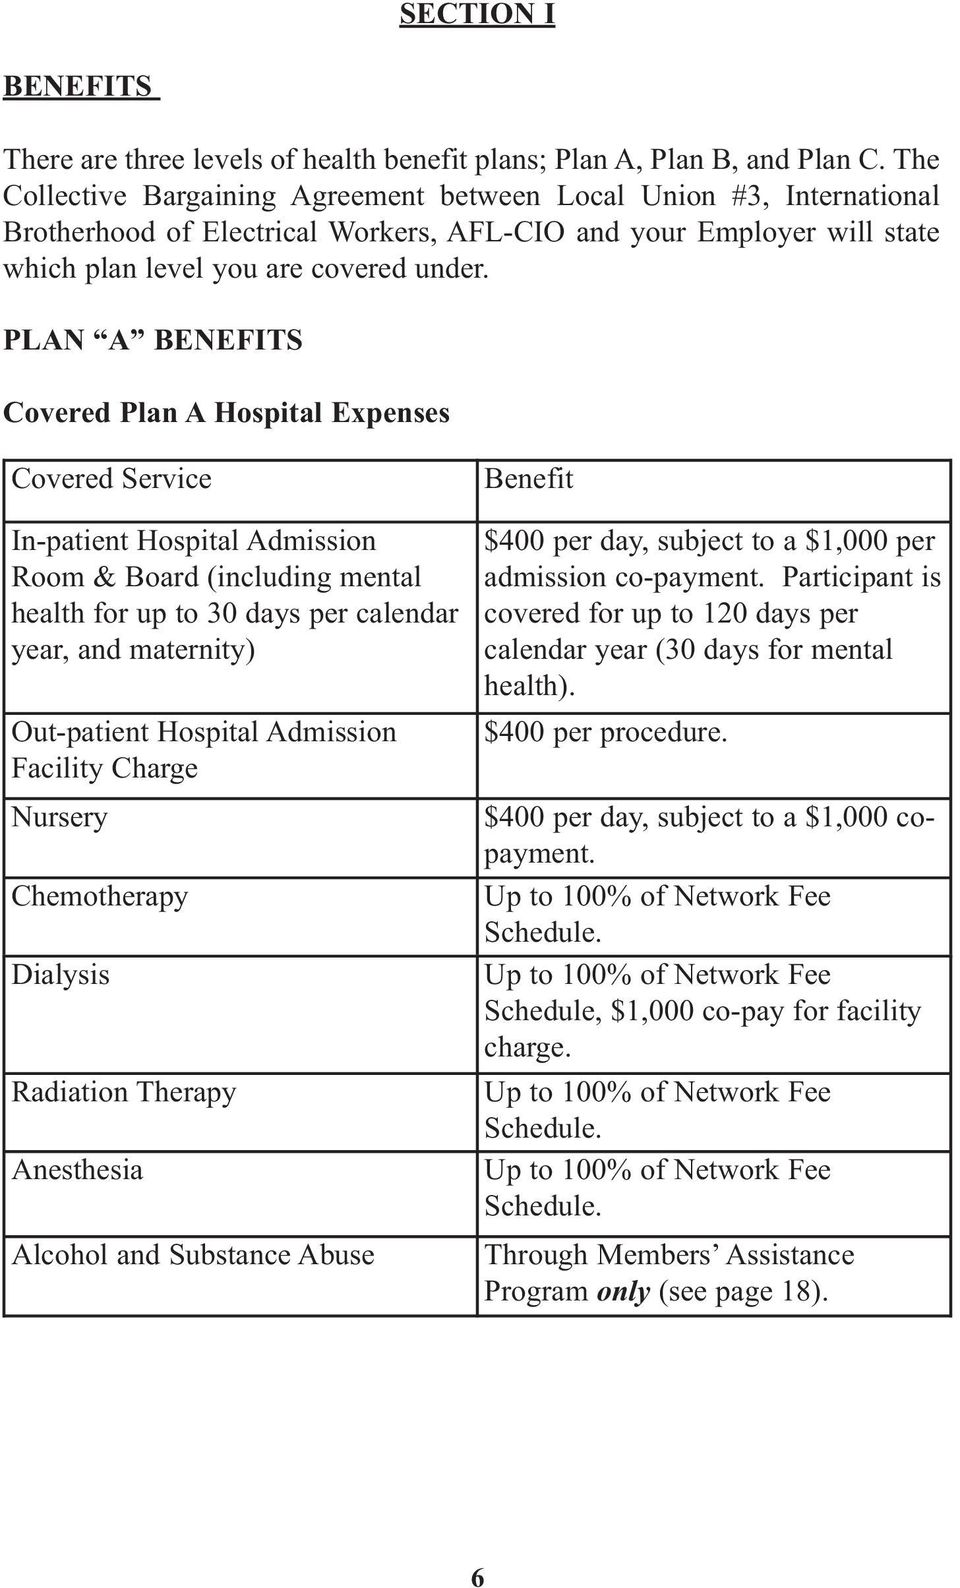 Health And Welfare Plan Pdf B Electrical A Benefits Covered Hospital Expenses Service In Patient Admission Room